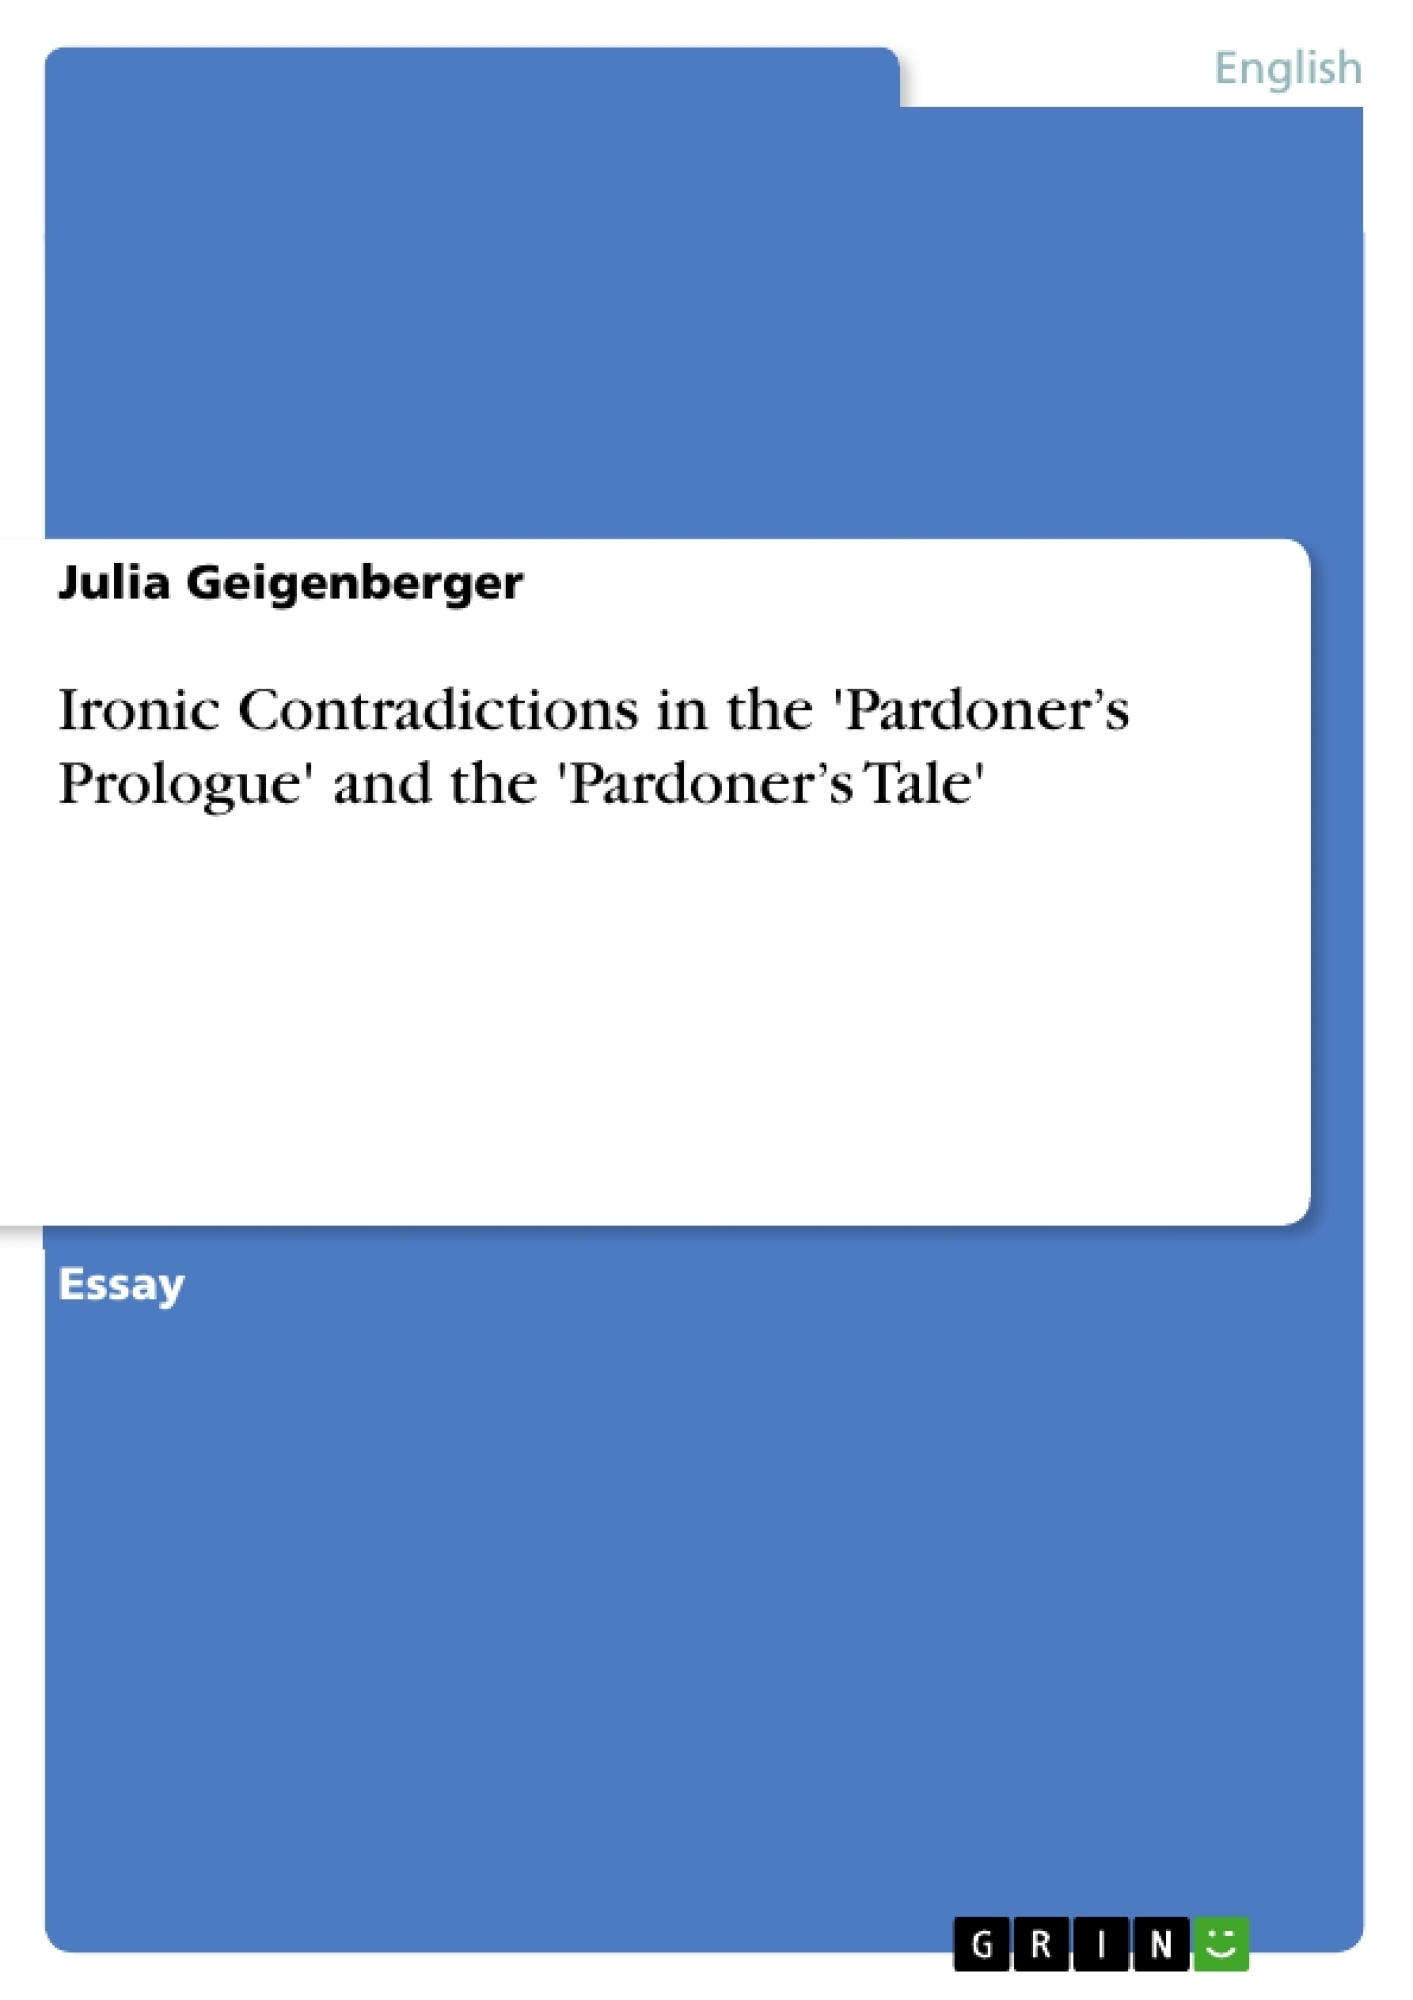 ironic contradictions in the pardoner s prologue and the ironic contradictions in the pardoner s prologue and the publish your master s thesis bachelor s thesis essay or term paper